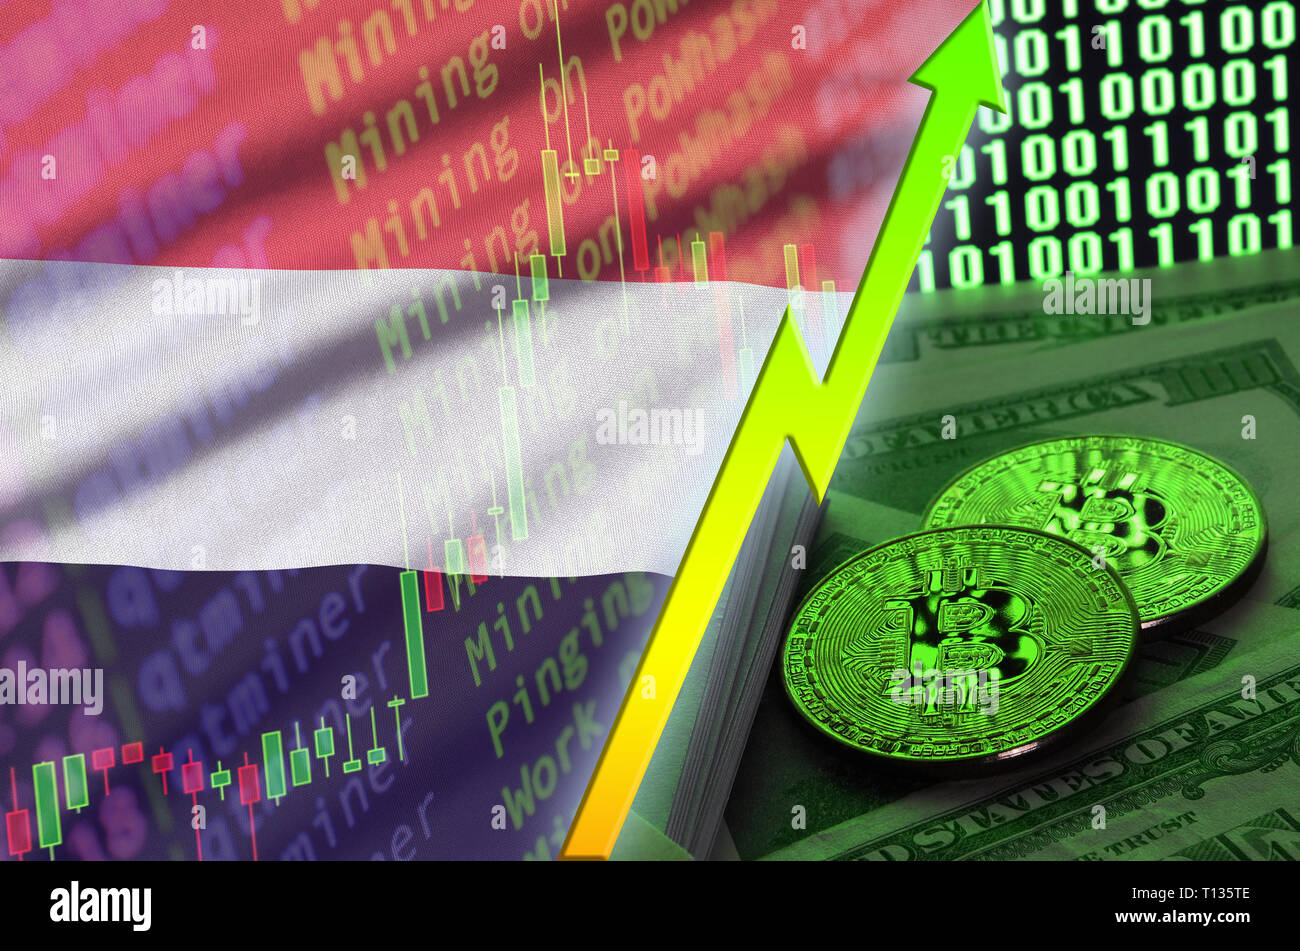 Yemen flag and cryptocurrency growing trend with two bitcoins on dollar bills and binary code display. Concept of raising Bitcoin in price and high co Stock Photo